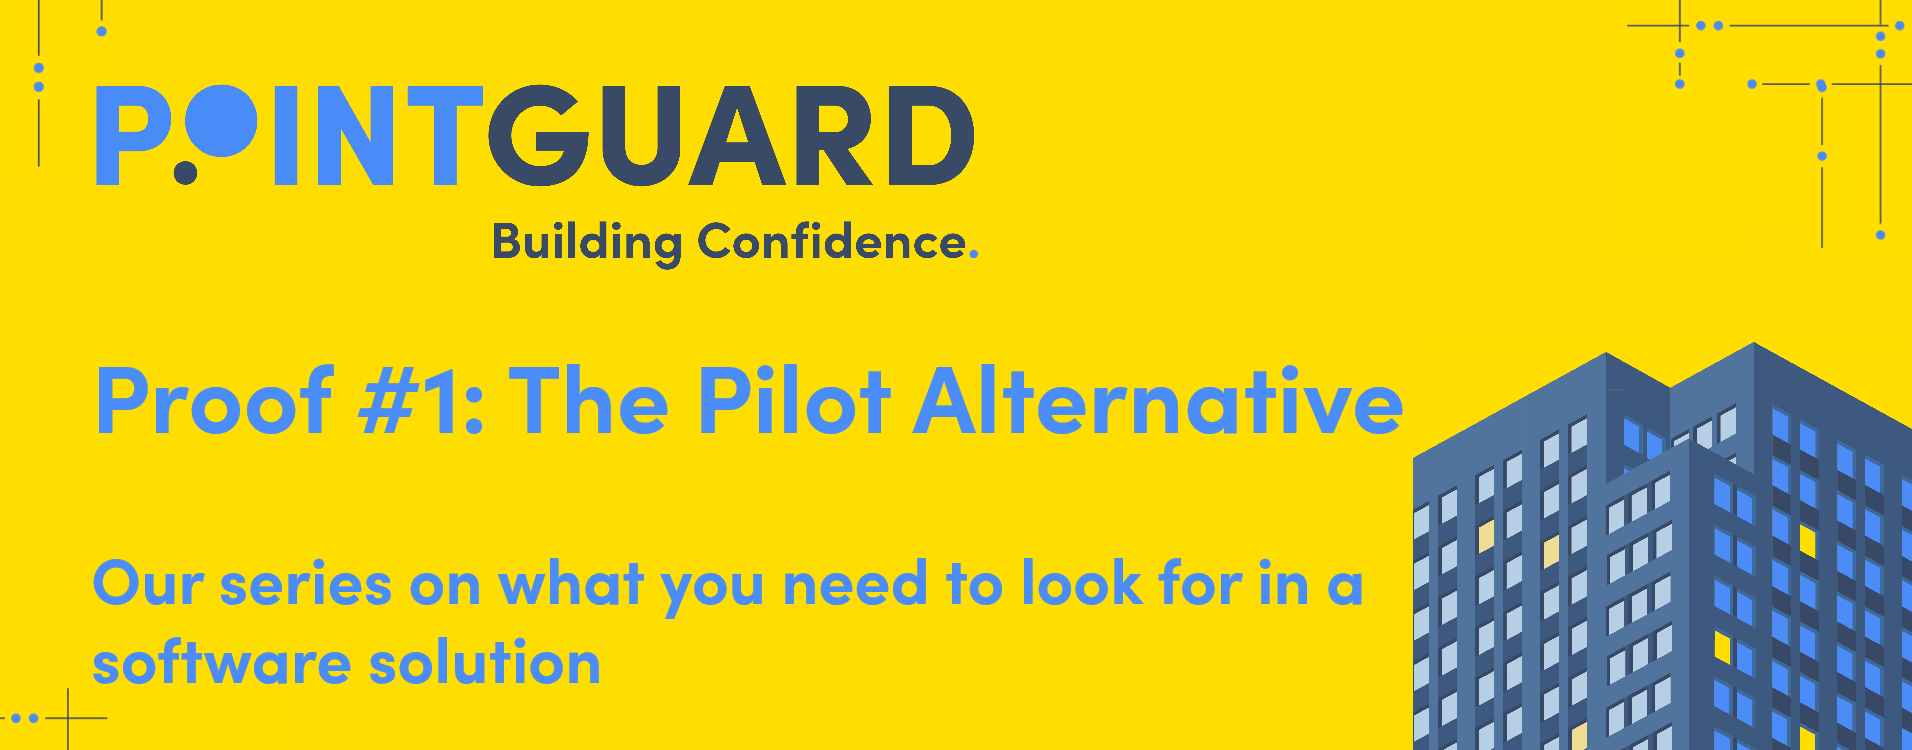 Proof #1: The Pilot Alternative